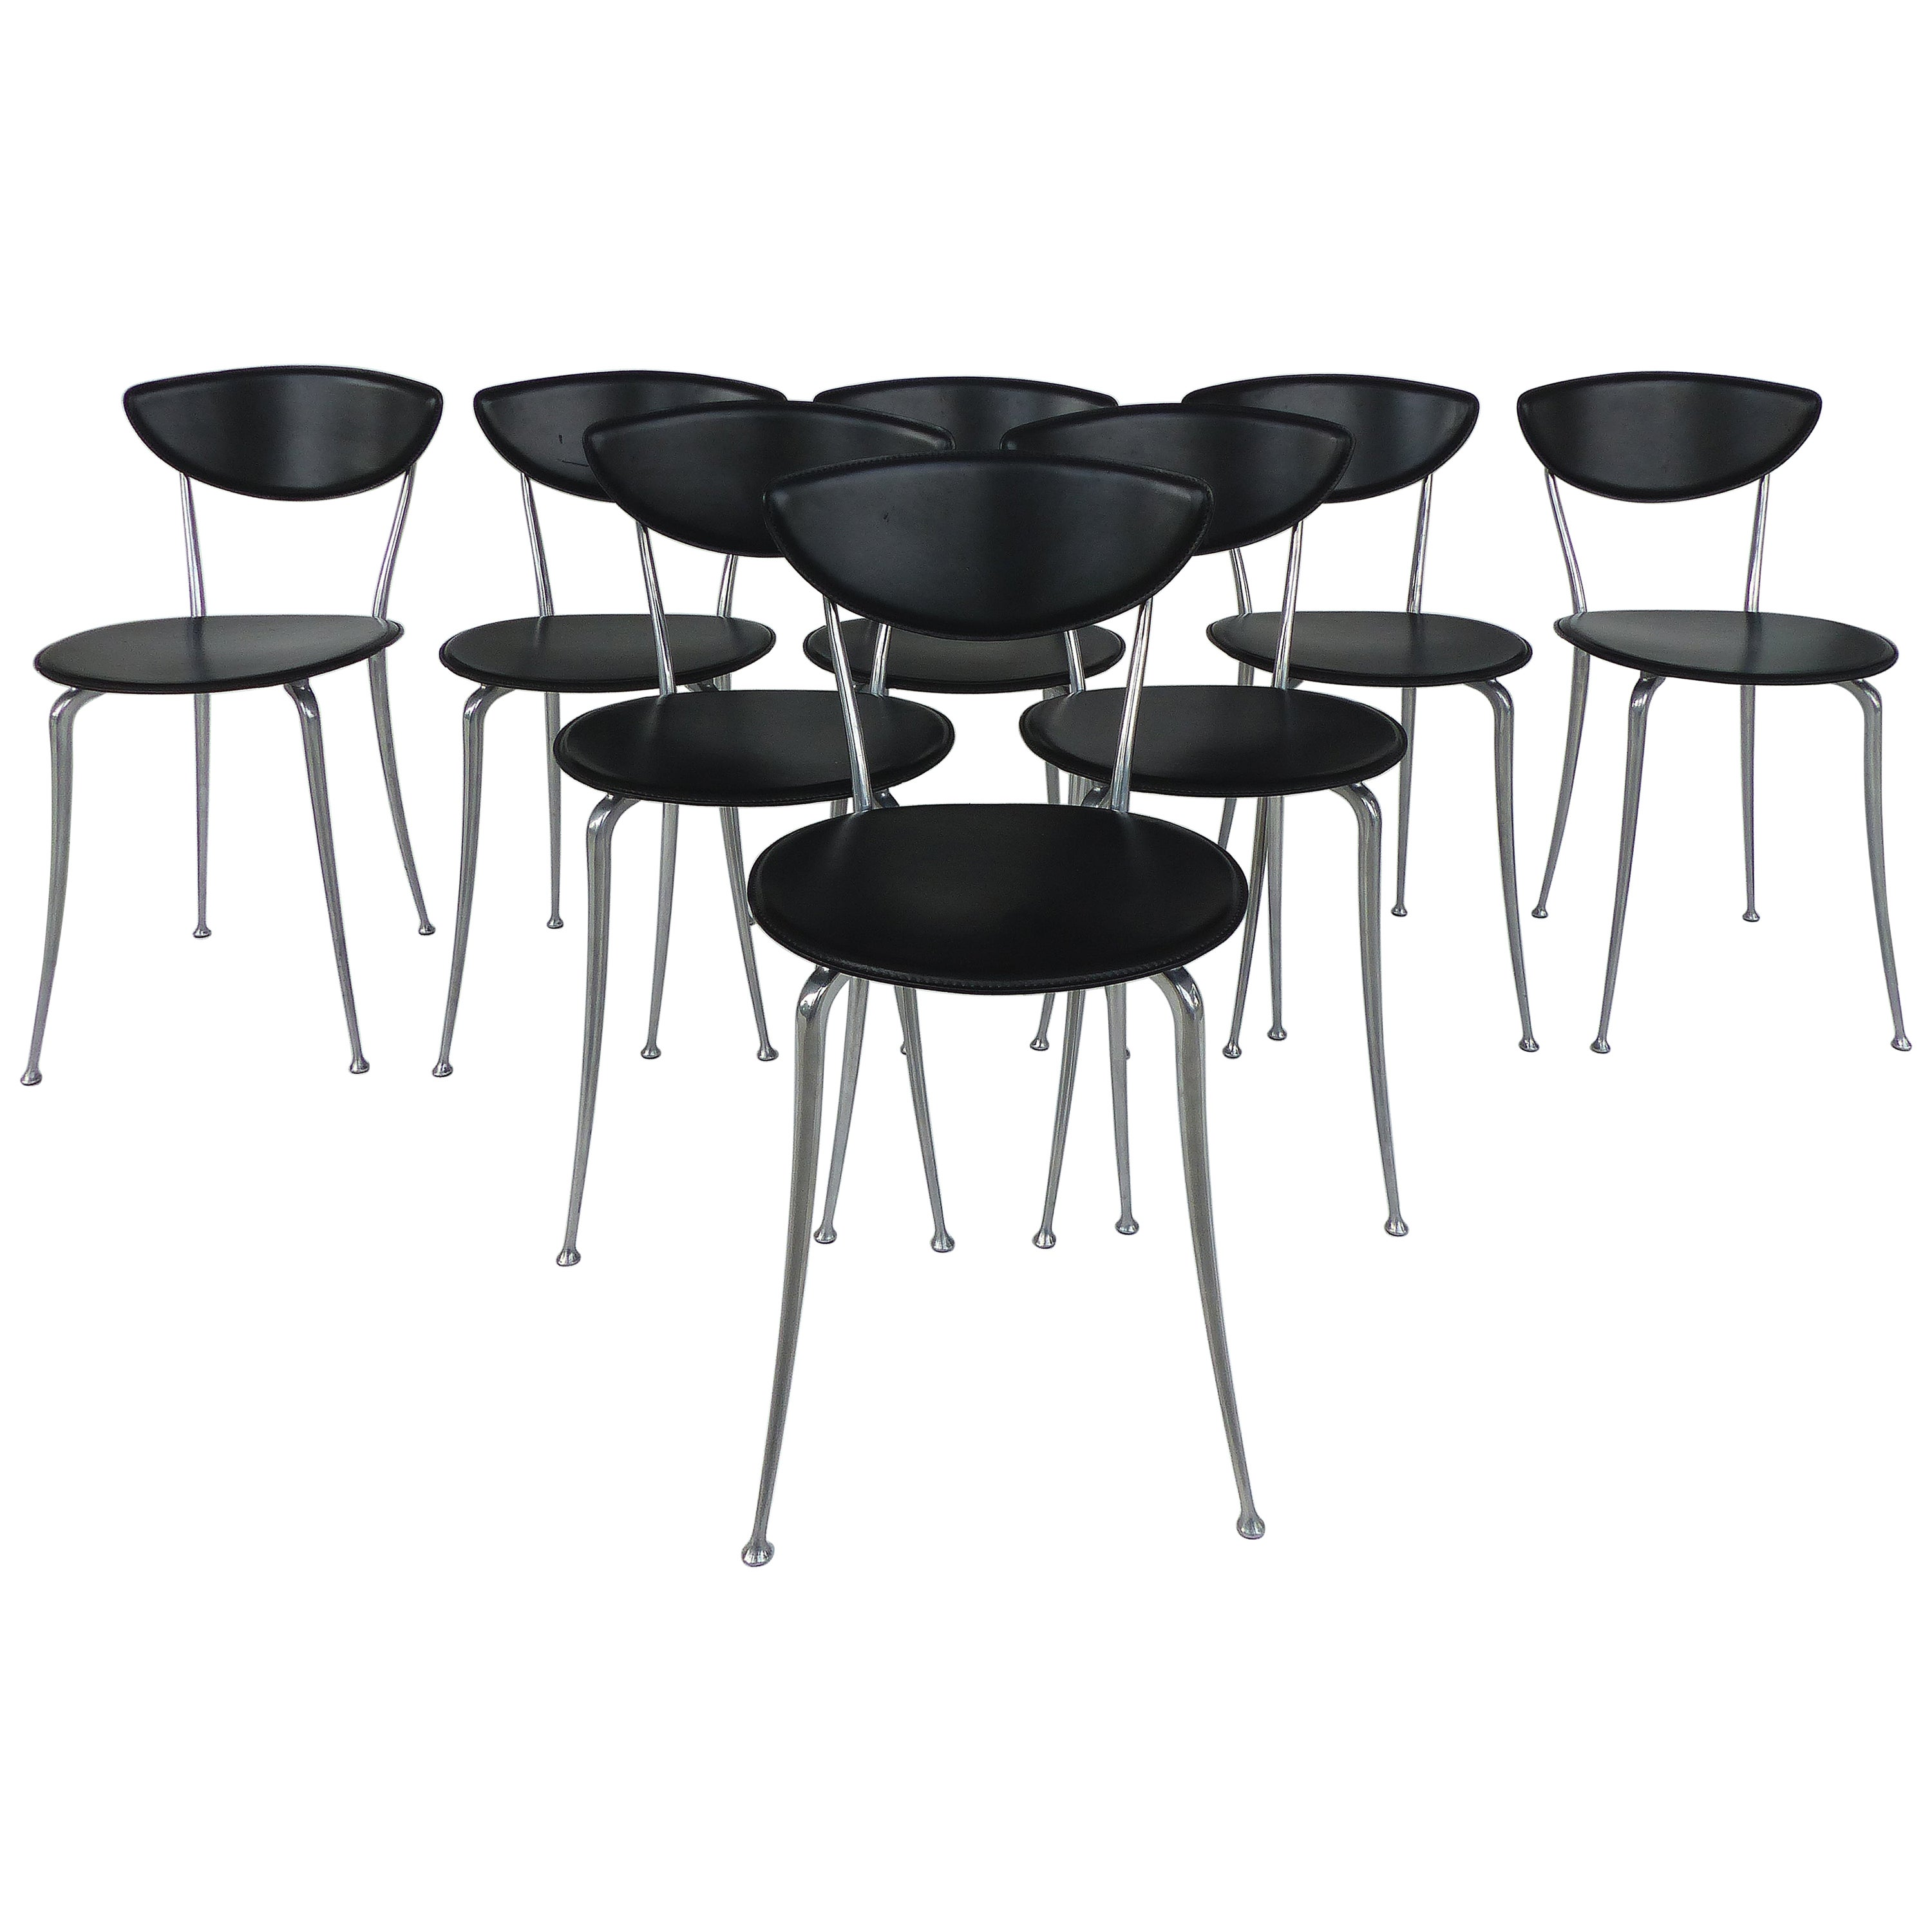 Set of 8 Arper Leather and Aluminum Dining Chairs, Italy